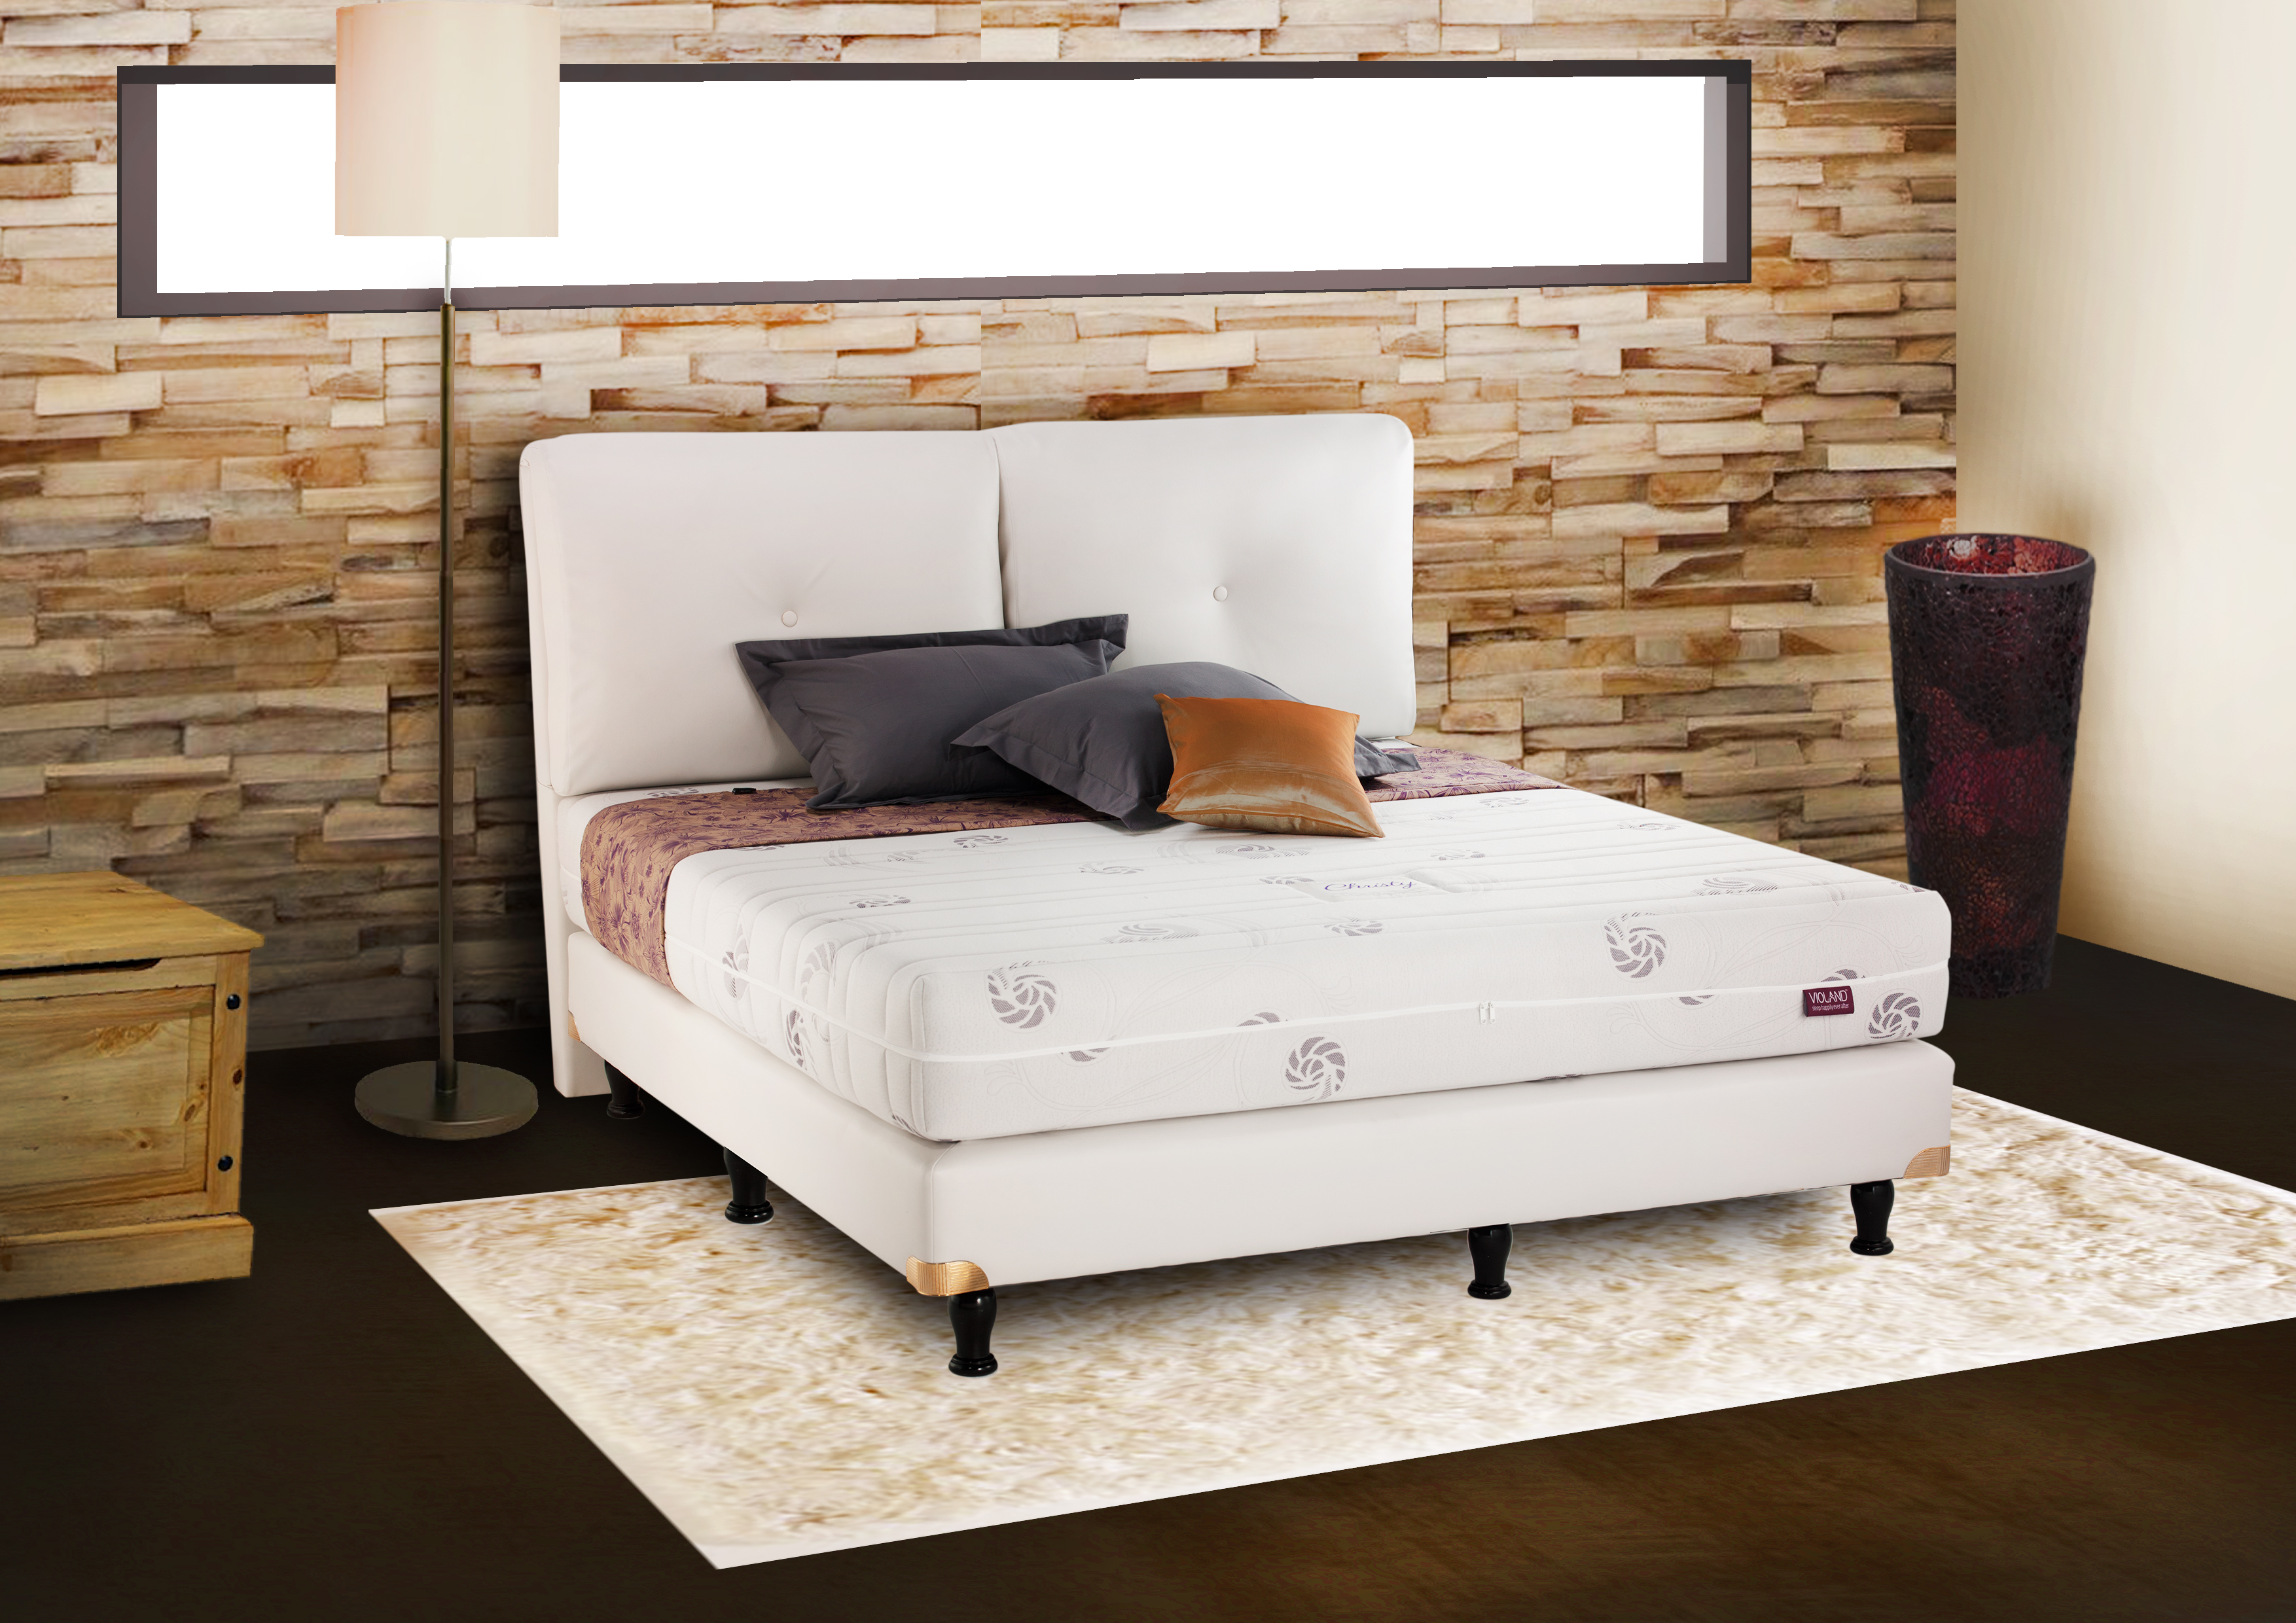 Christy orthopedic latex violand mattress manufacturers indonesia